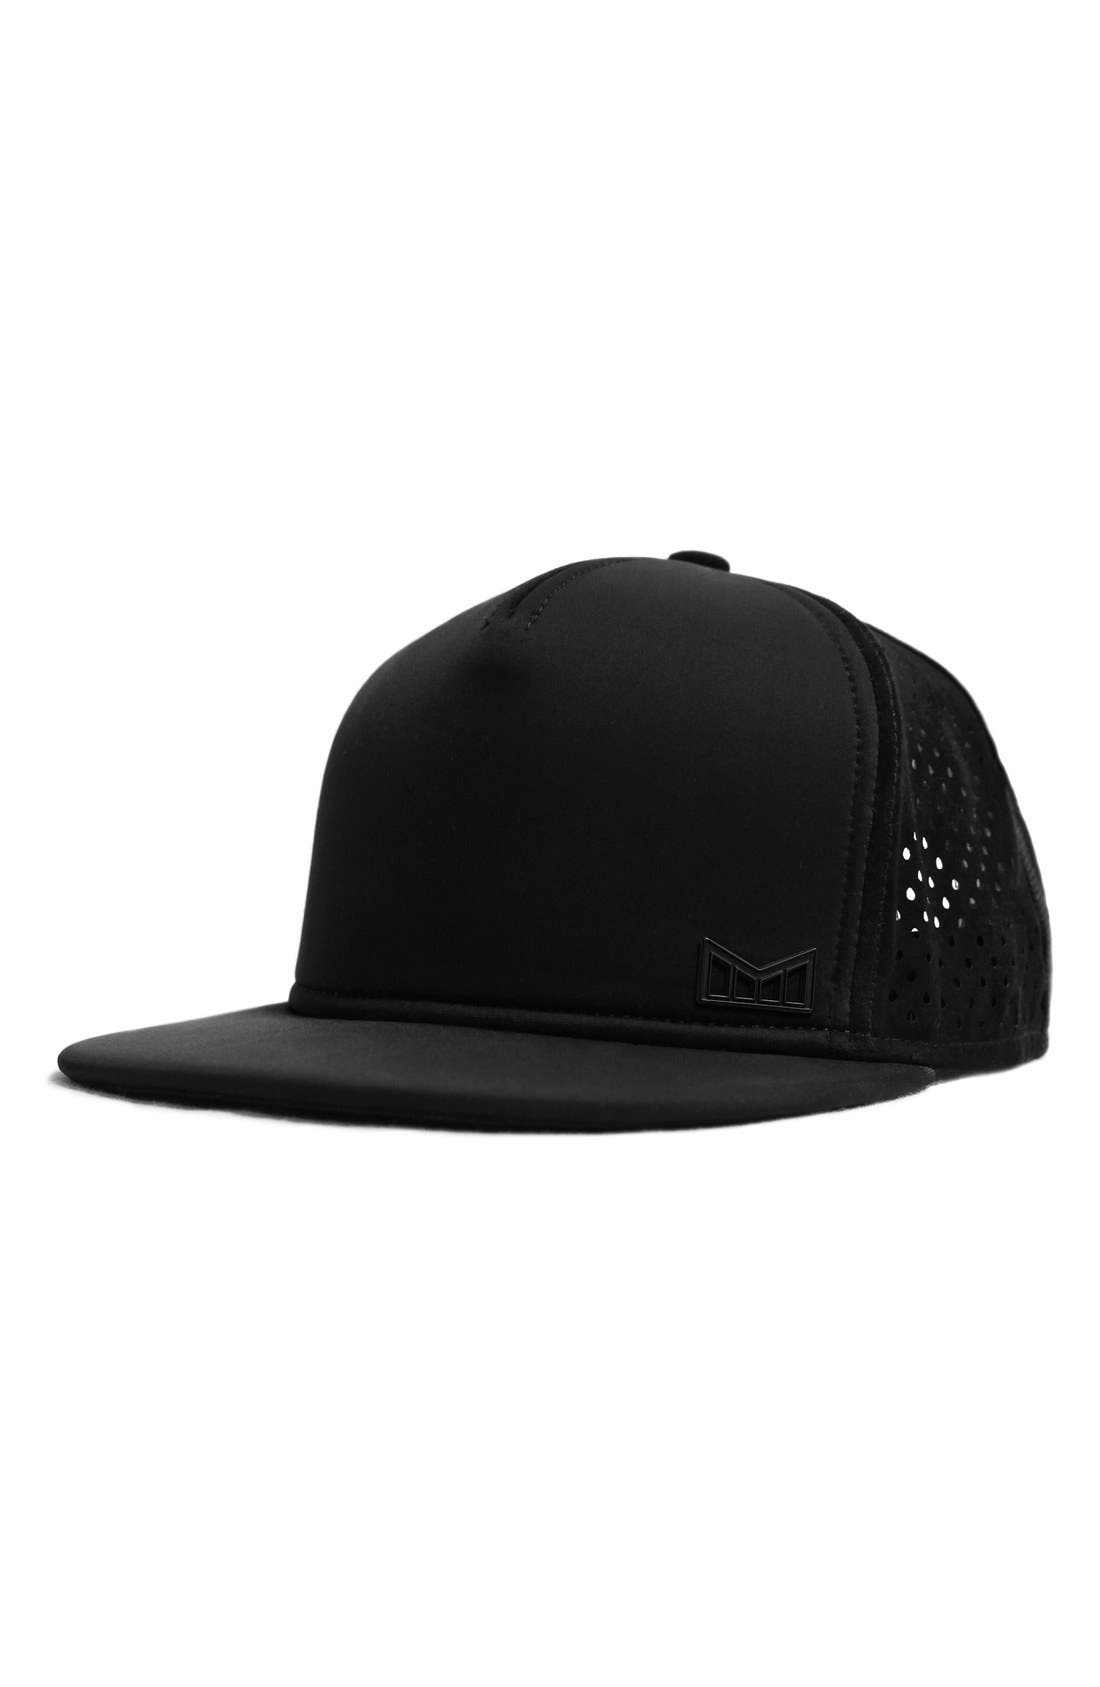 MELIN The Sharpshooter Snapback Baseball Cap